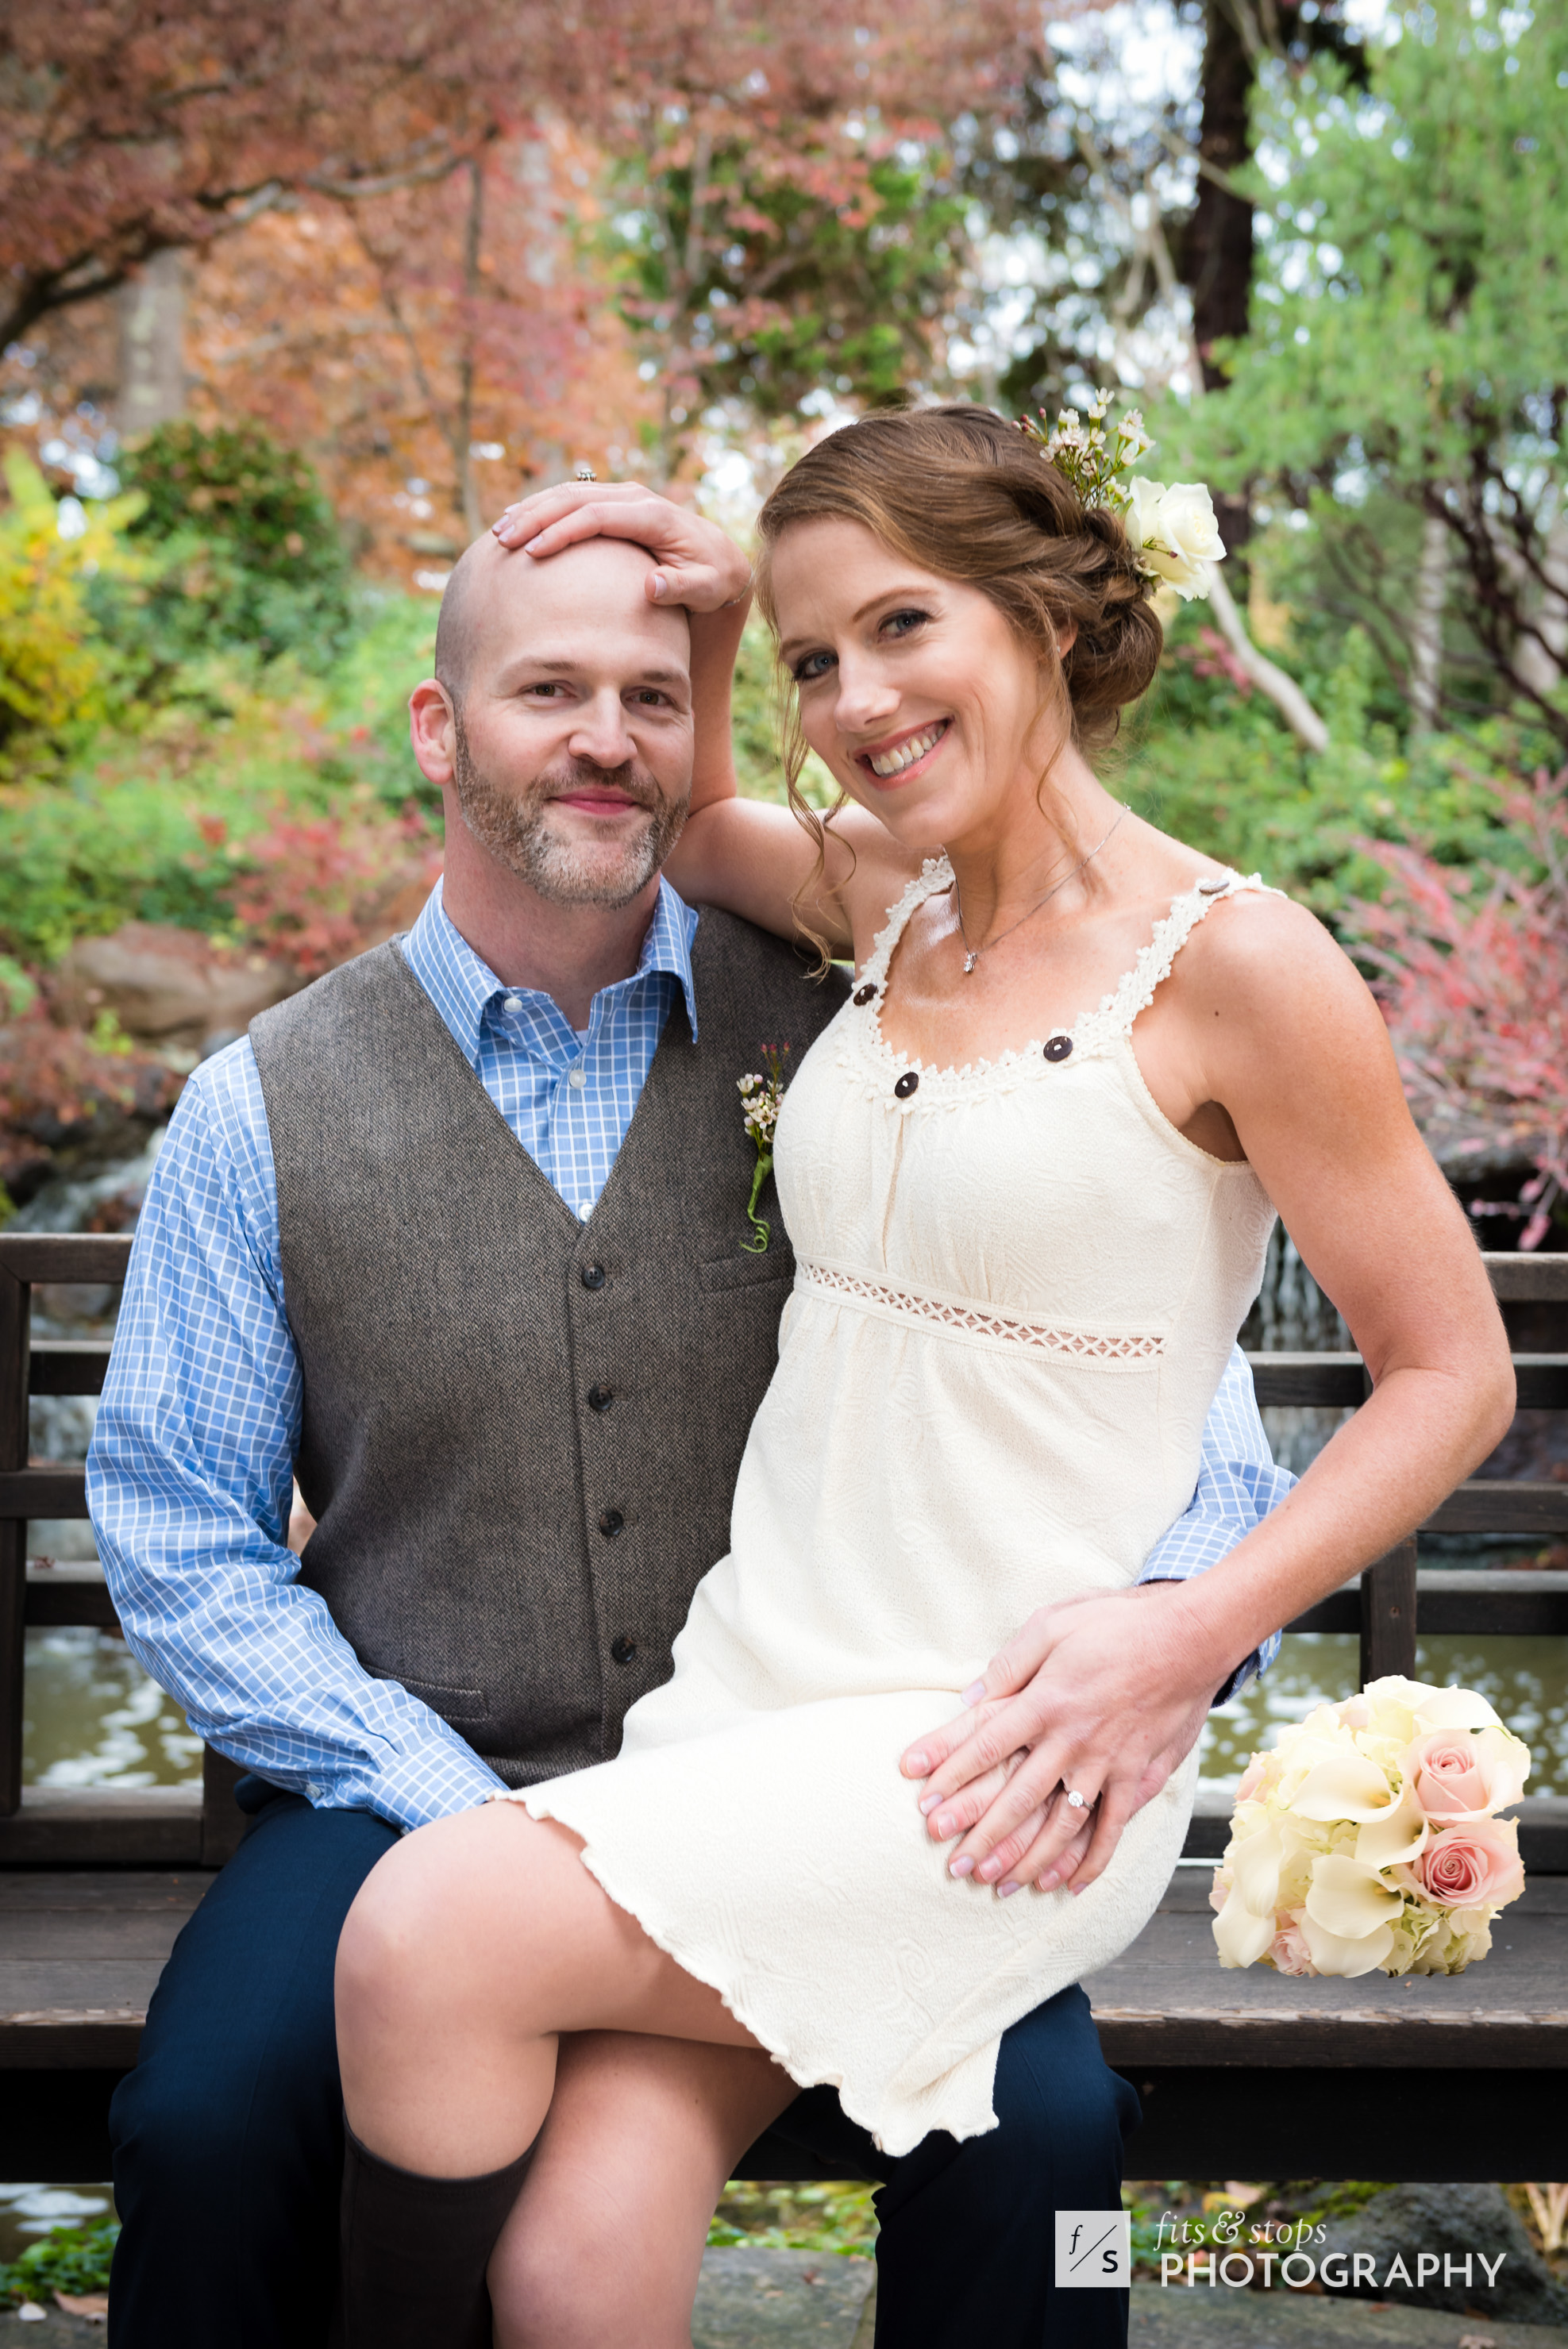 A newly married bride sits on her groom's lap, caressing his bald head with her hand.